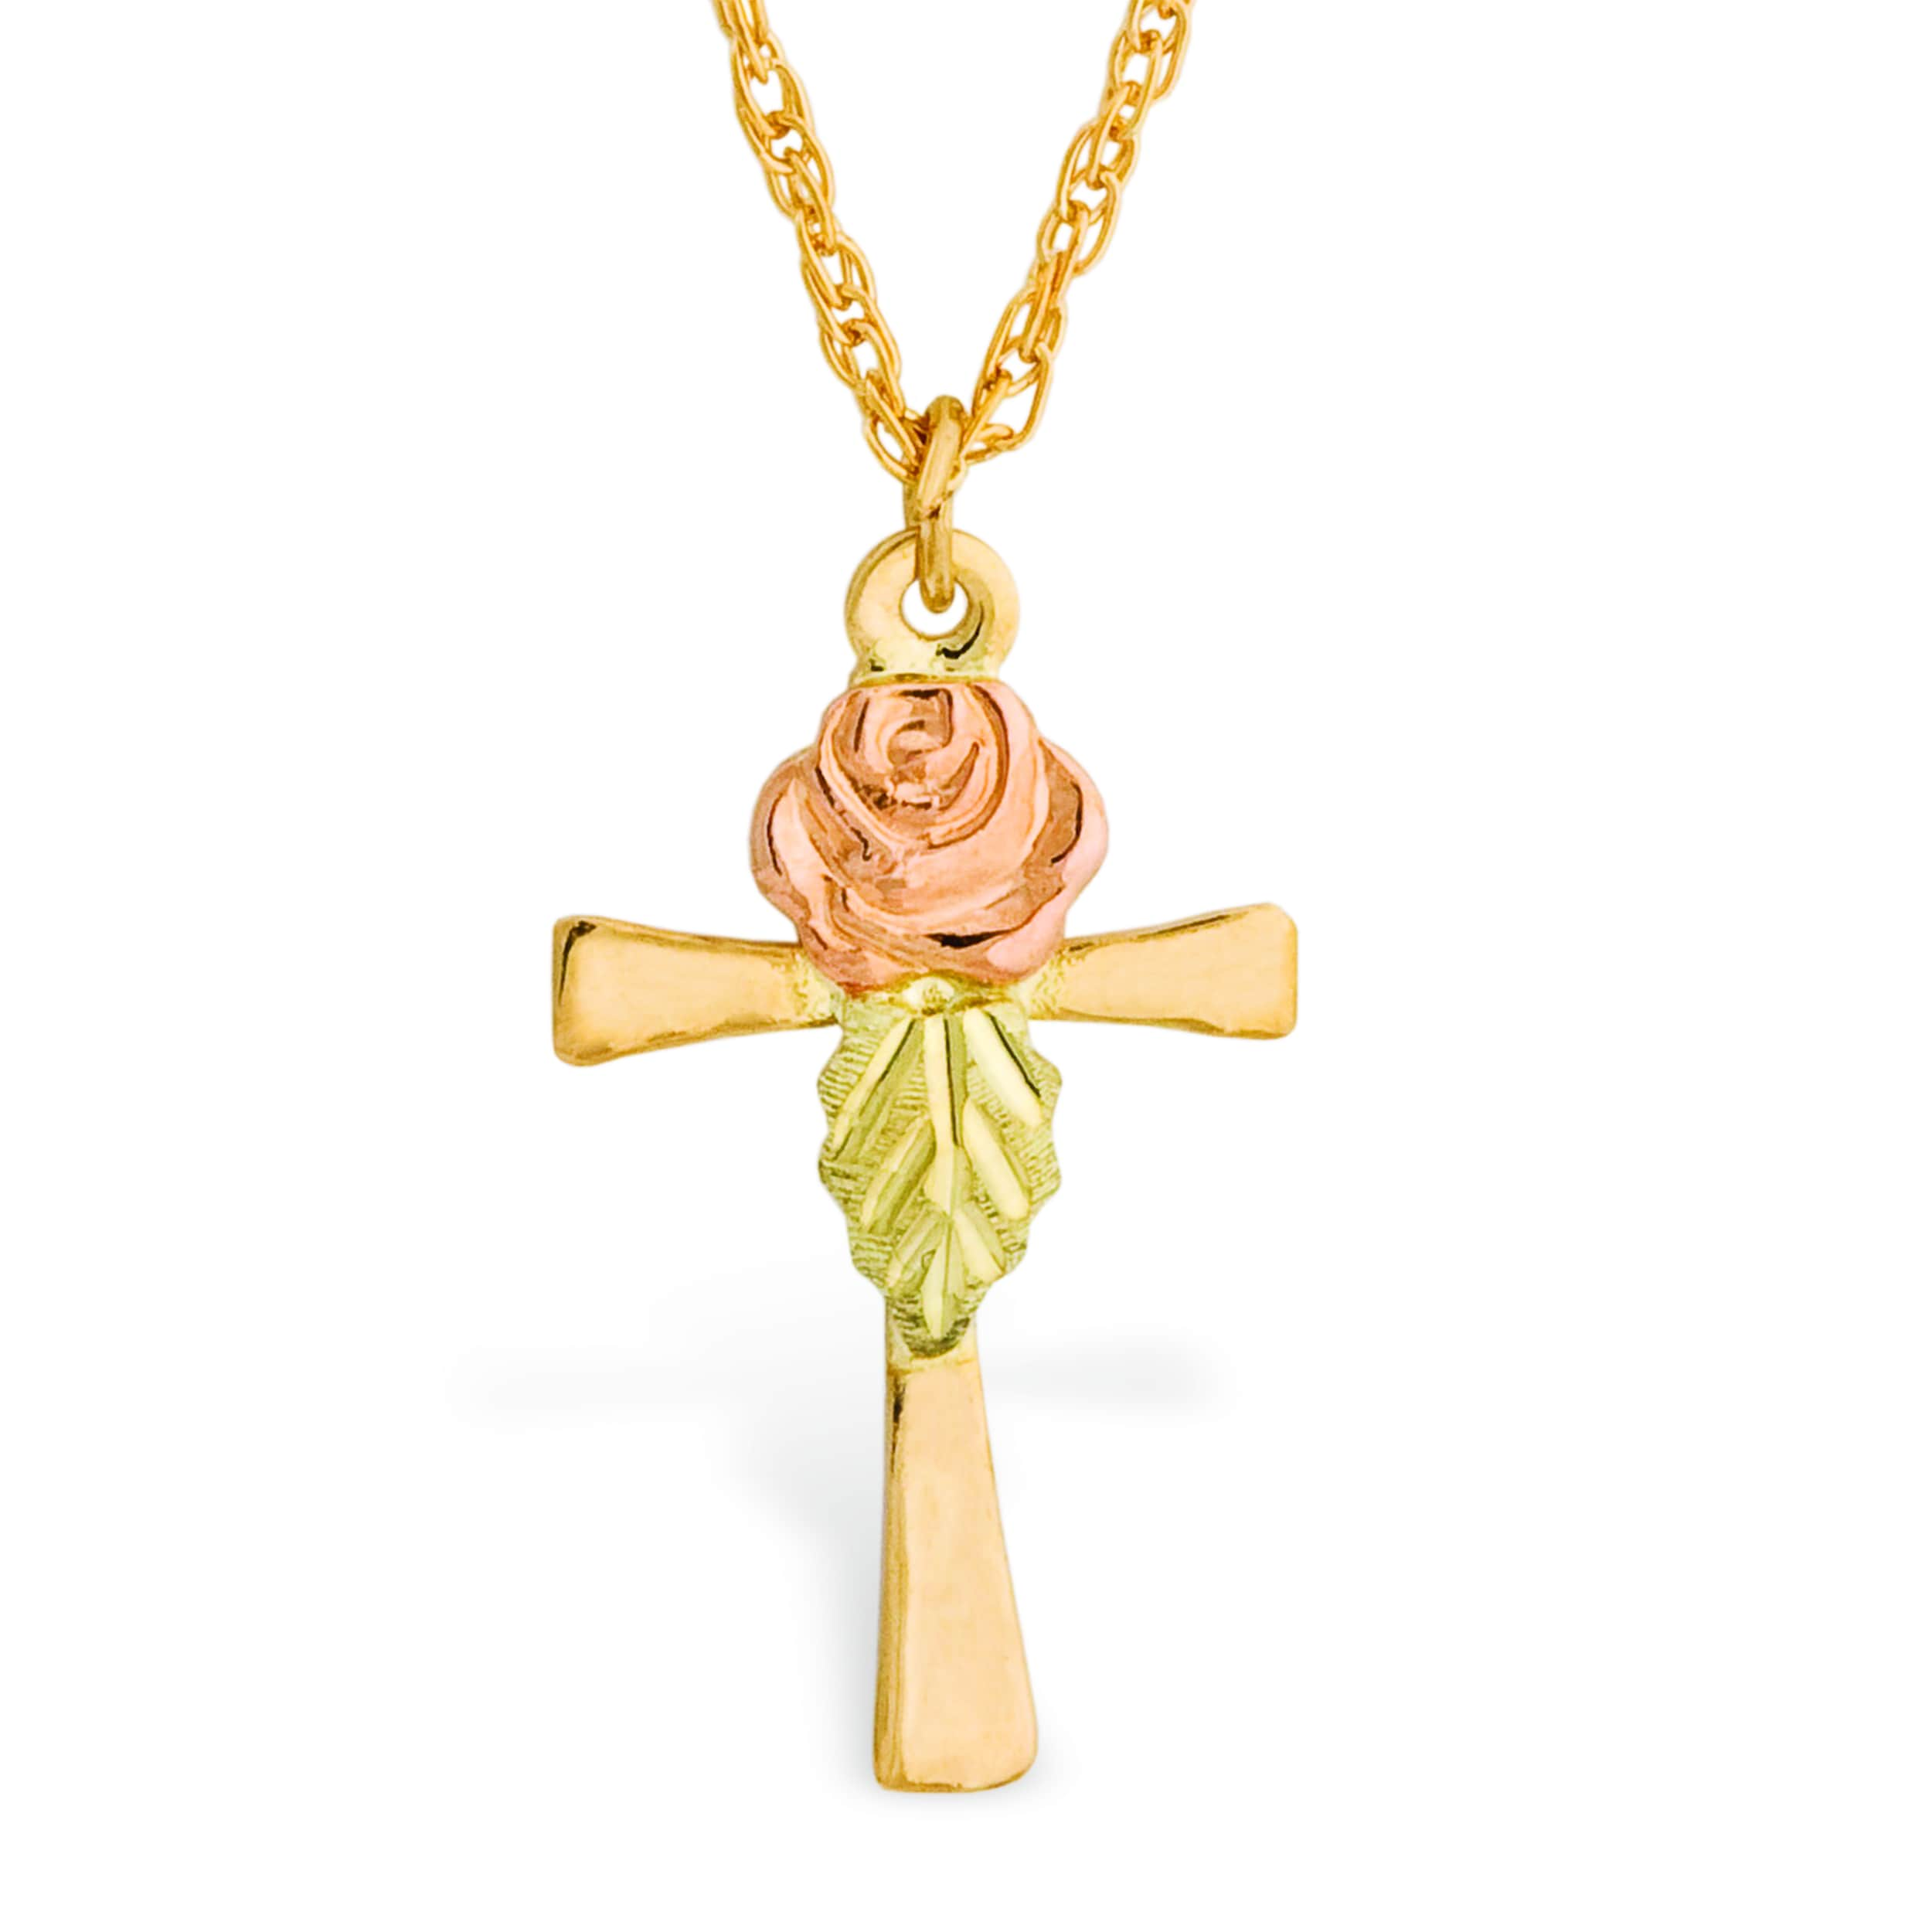 Shop black hills gold rose cross pendant free shipping today shop black hills gold rose cross pendant free shipping today overstock 10694722 aloadofball Image collections